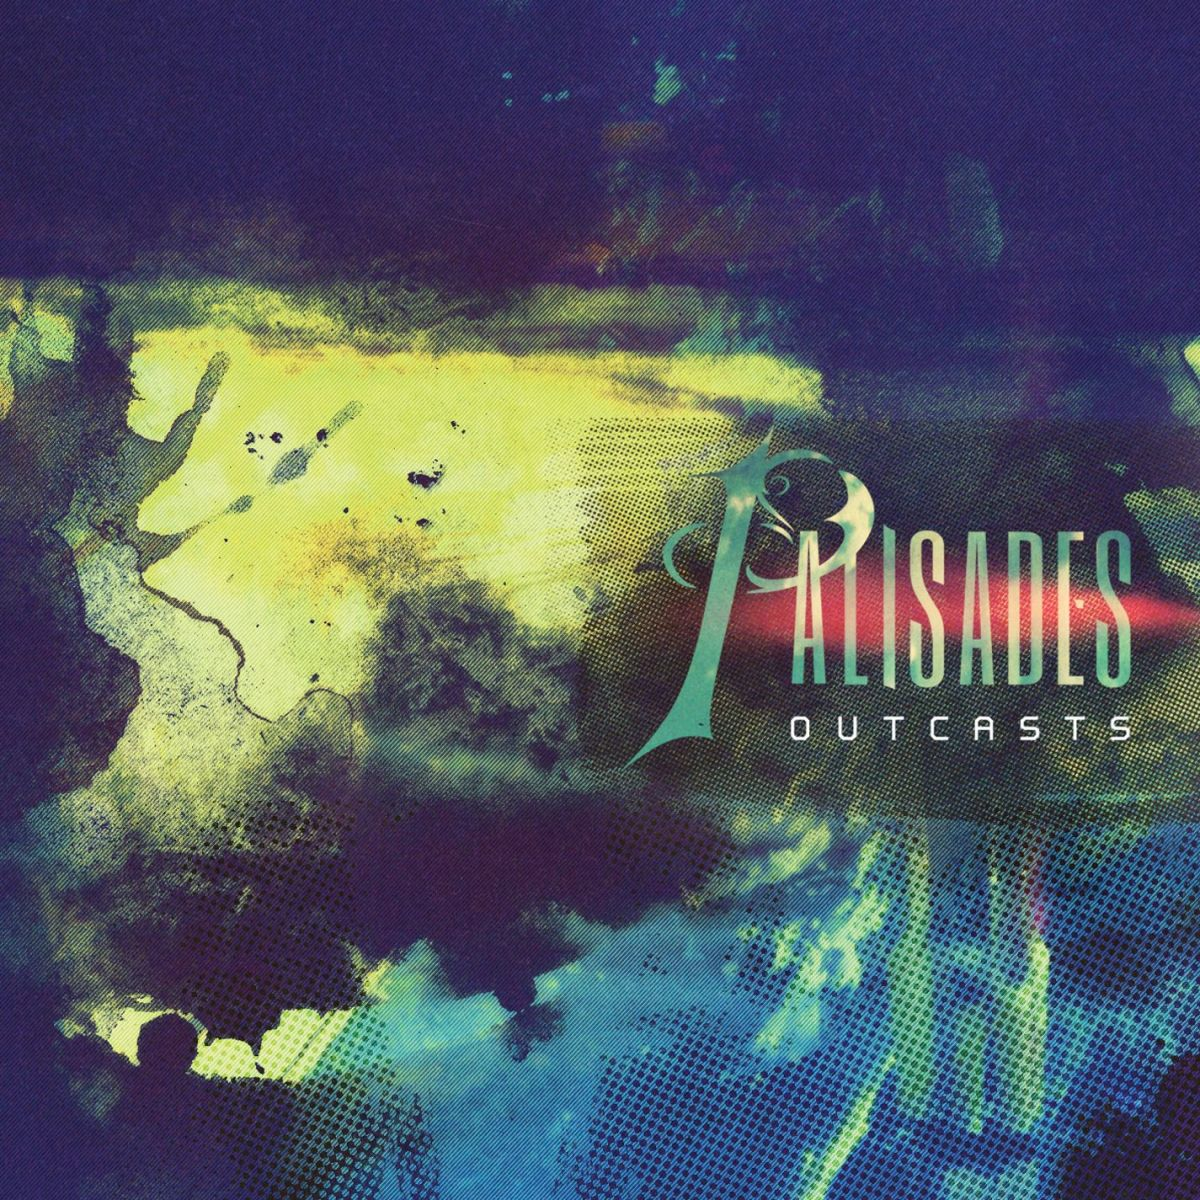 Palisades - Outcasts (2013)